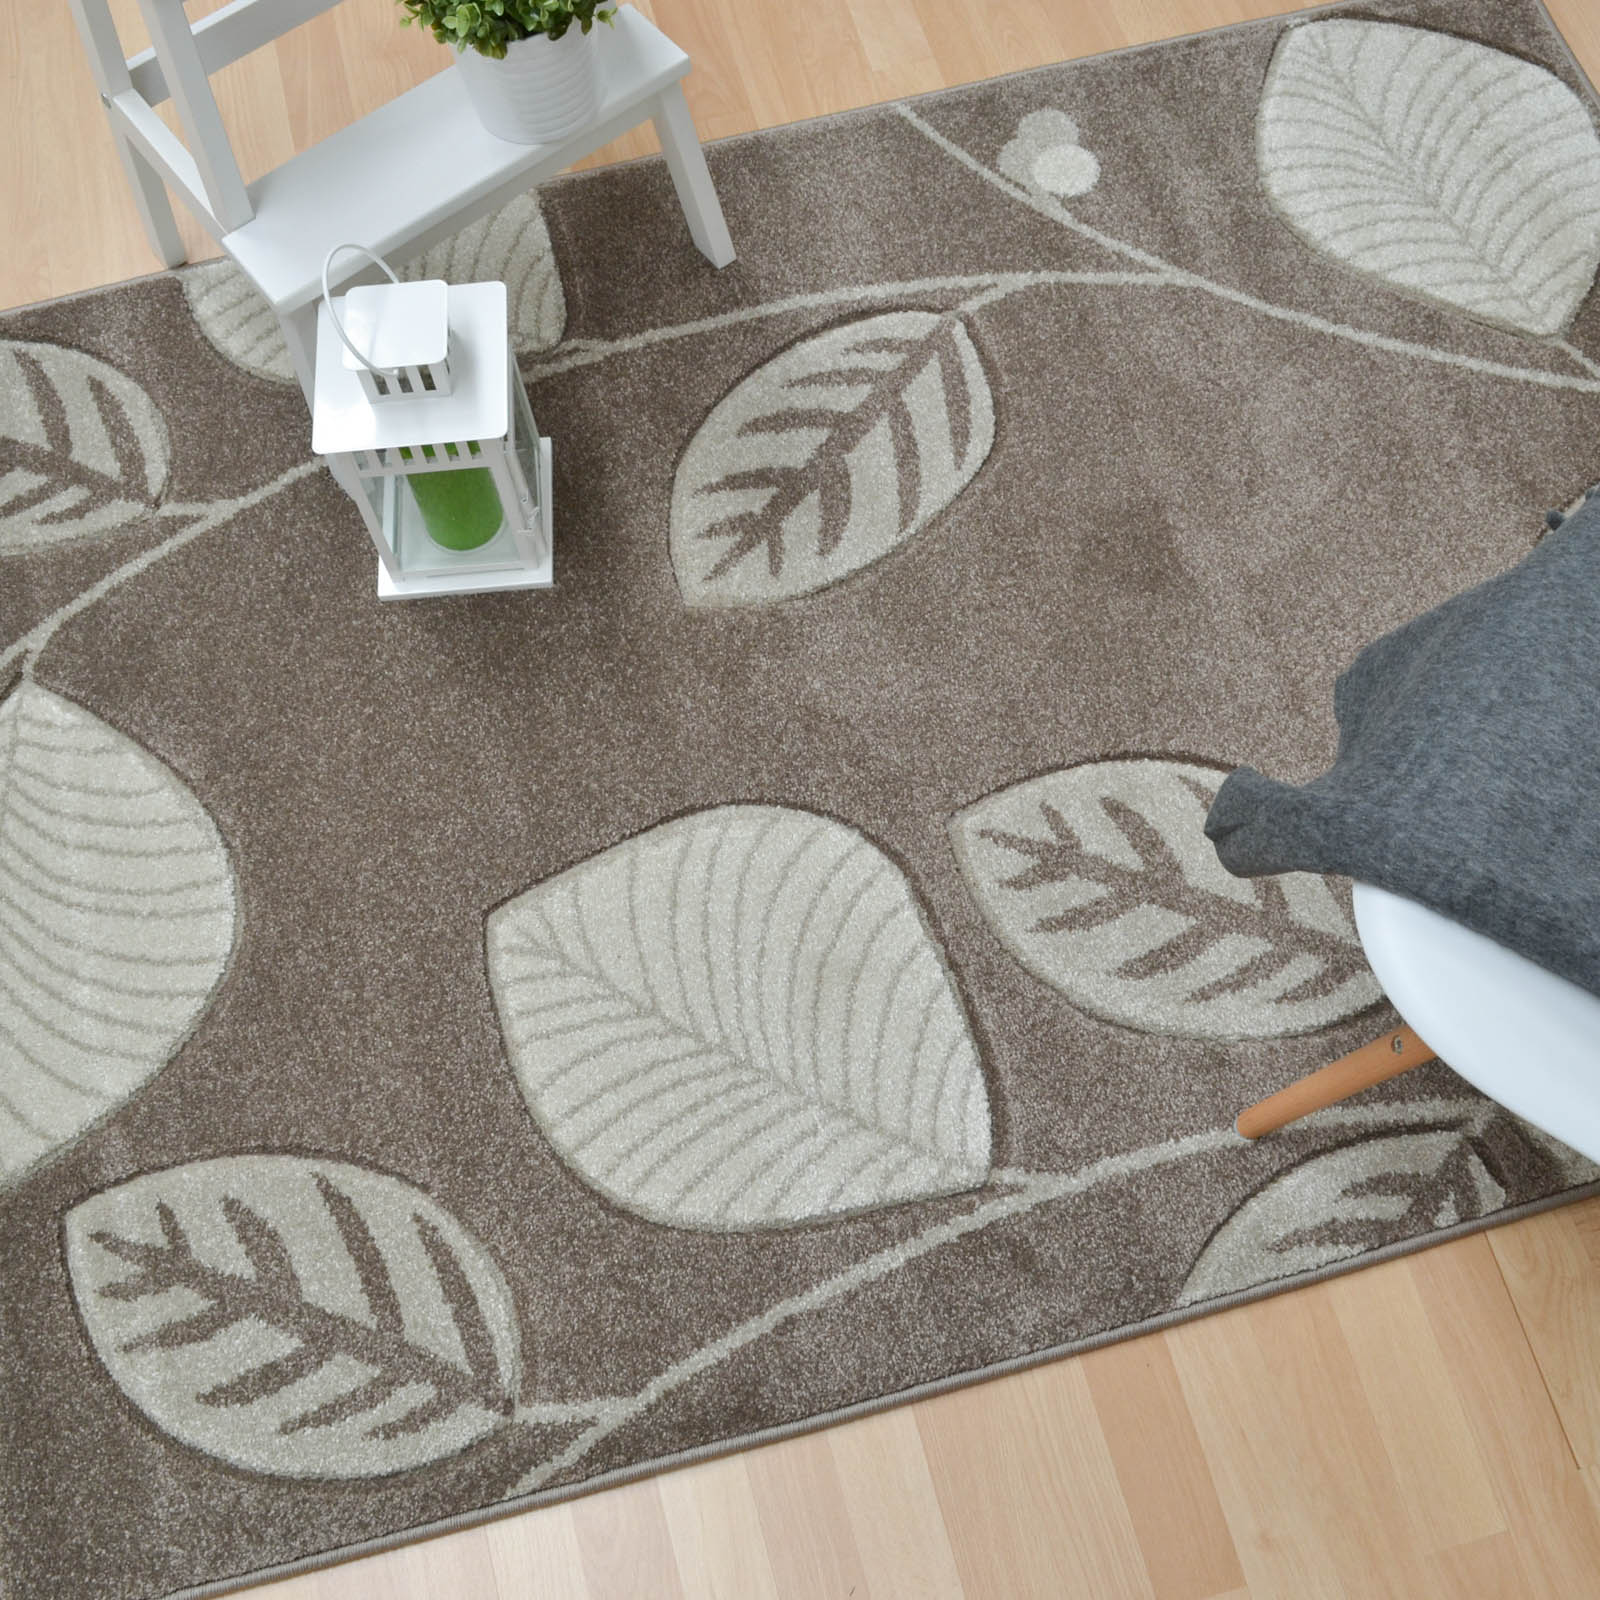 Vogue Leaf Rugs VG07 in Stone Beige